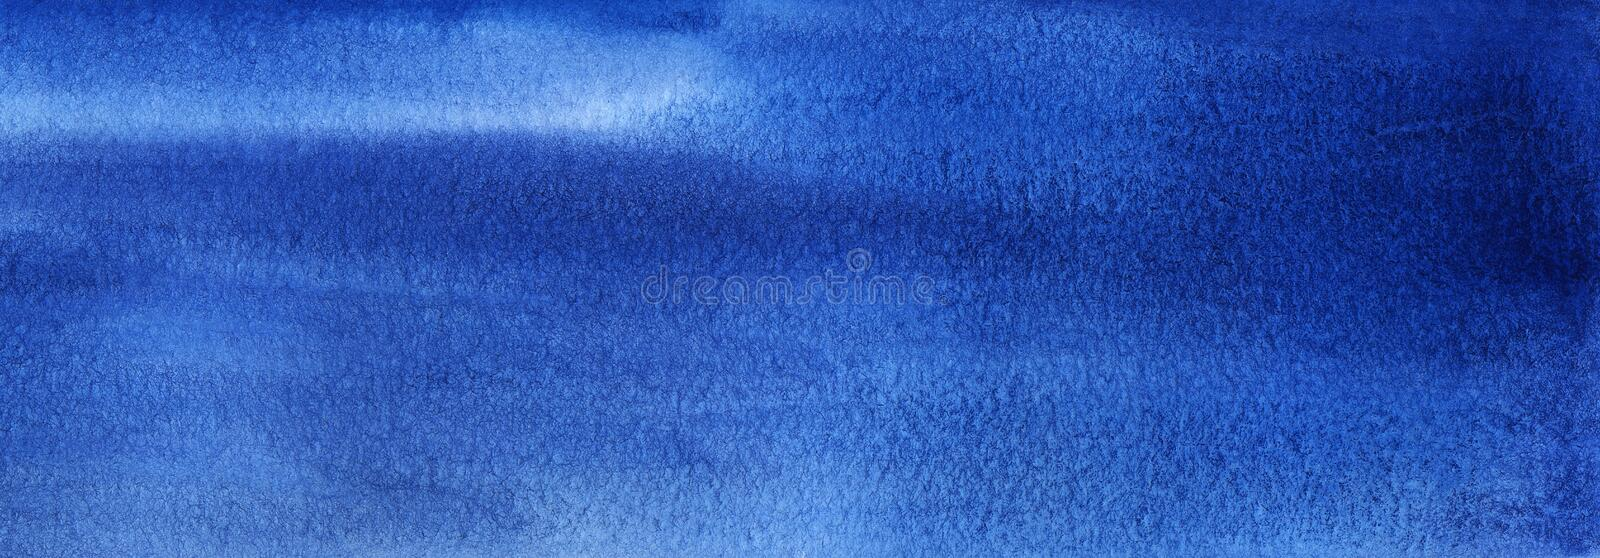 Abstract hand-drawn background in blue shades. Watercolor texture with granulation. Multi-colored stripes and ripples with white. Blurry splashes. Brush stroked vector illustration